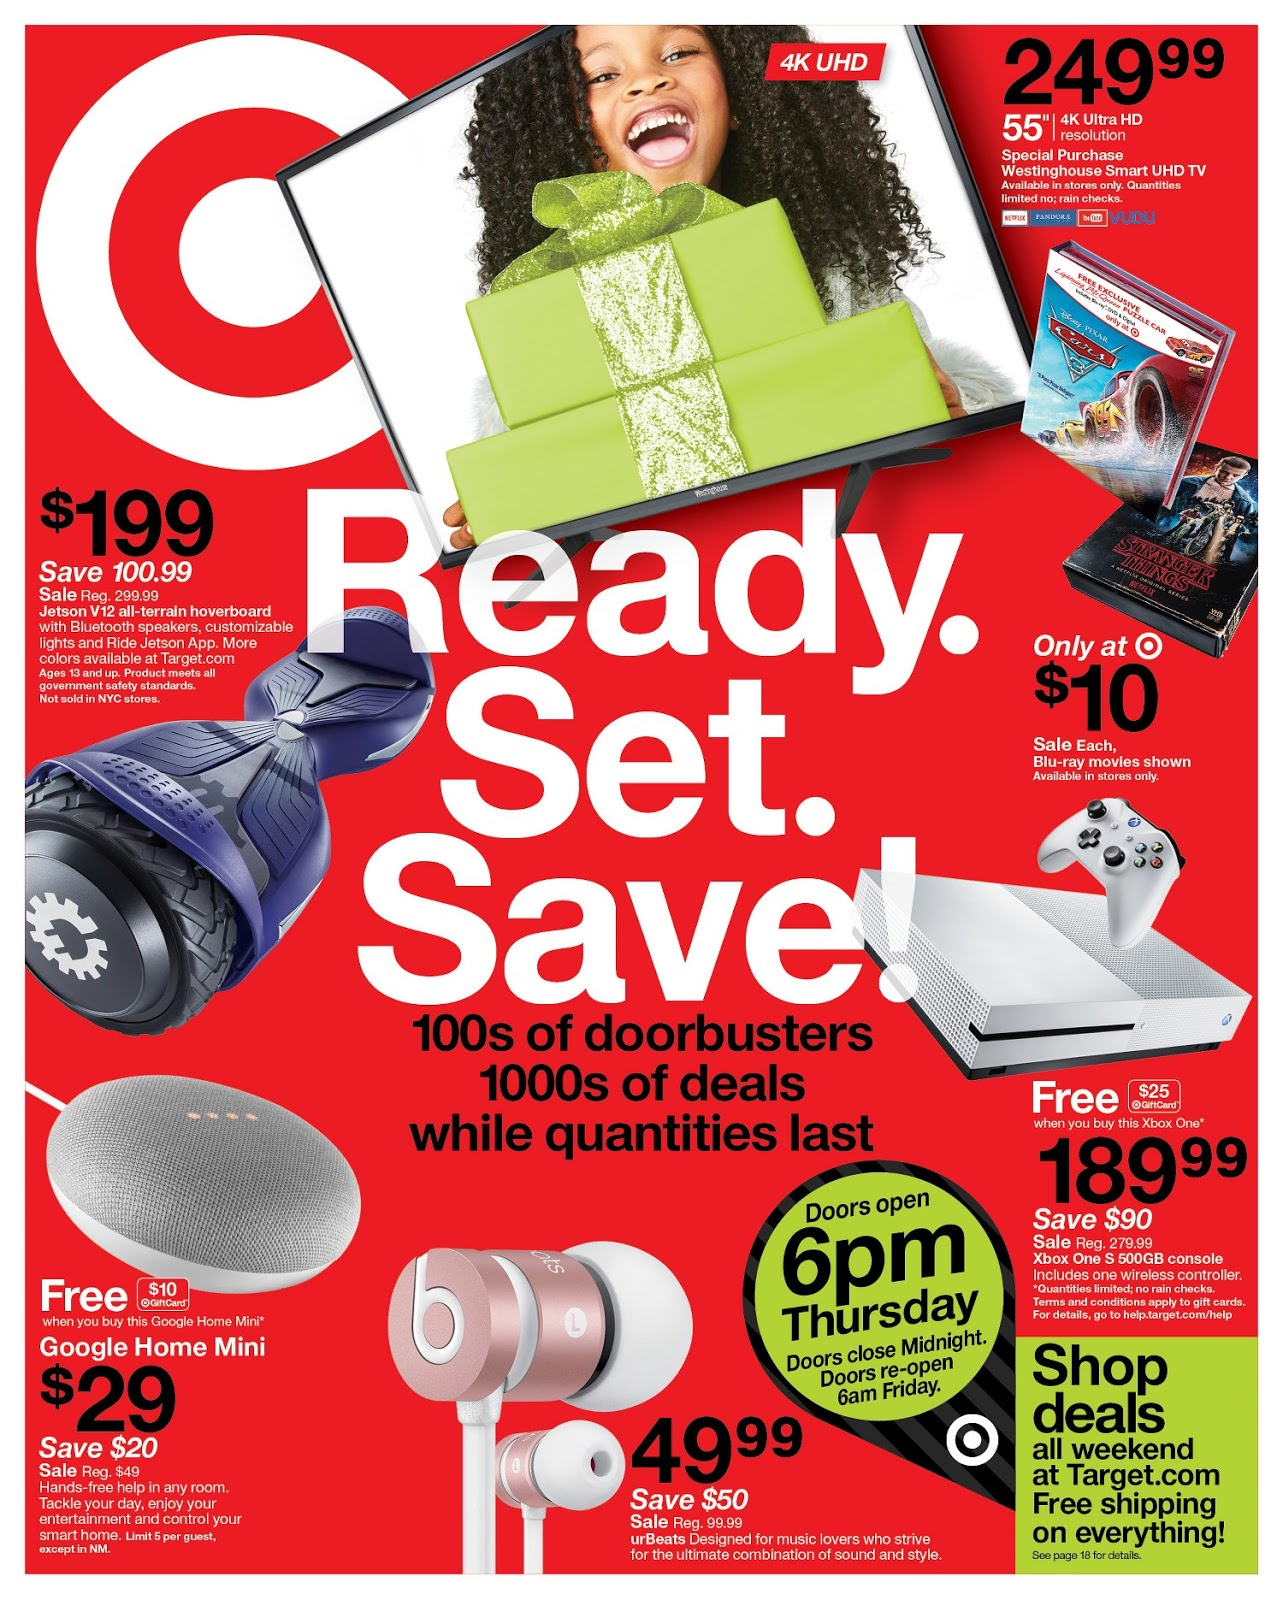 Target to offer shoppers a breather after Thanksgiving